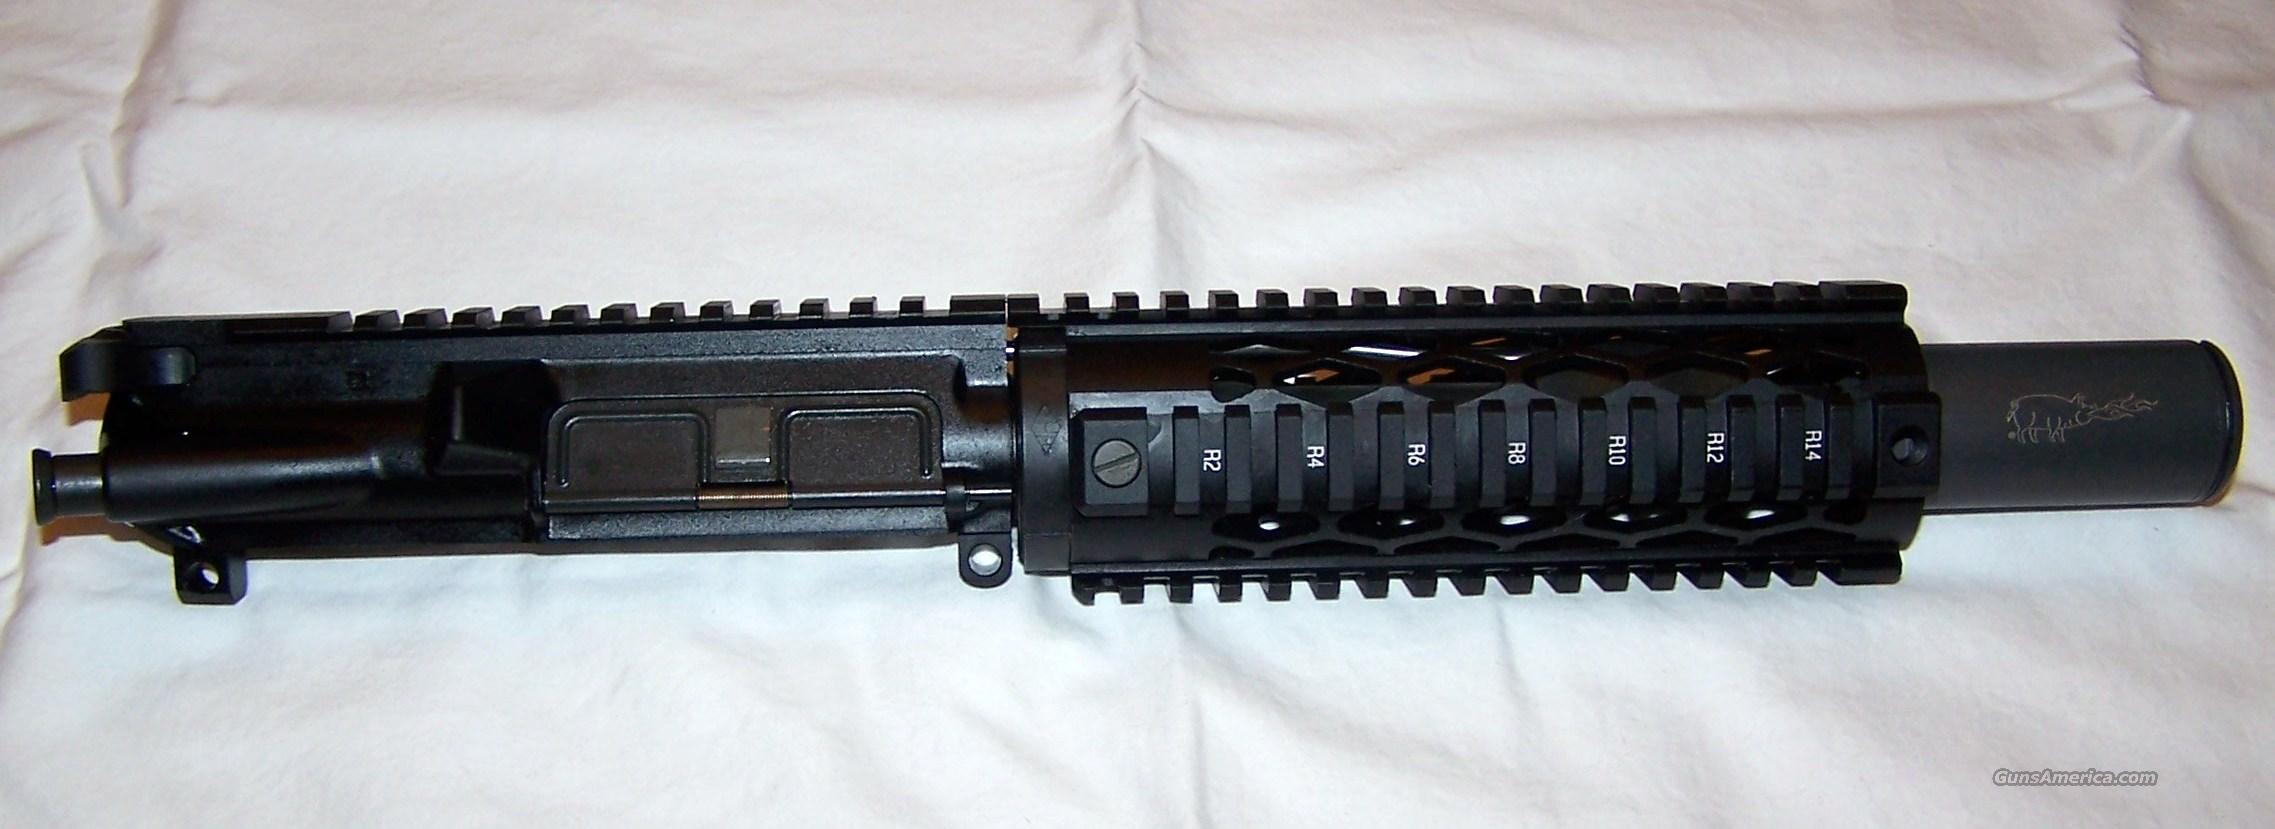 AR-15 AR15 Complete SBR Pistol Upper Receiver .223 Bushmaster BCM Noveske YHM Chrome Bolt / Carrier Group Troy M7 Pelican Case  Guns > Rifles > AR-15 Rifles - Small Manufacturers > Upper Only